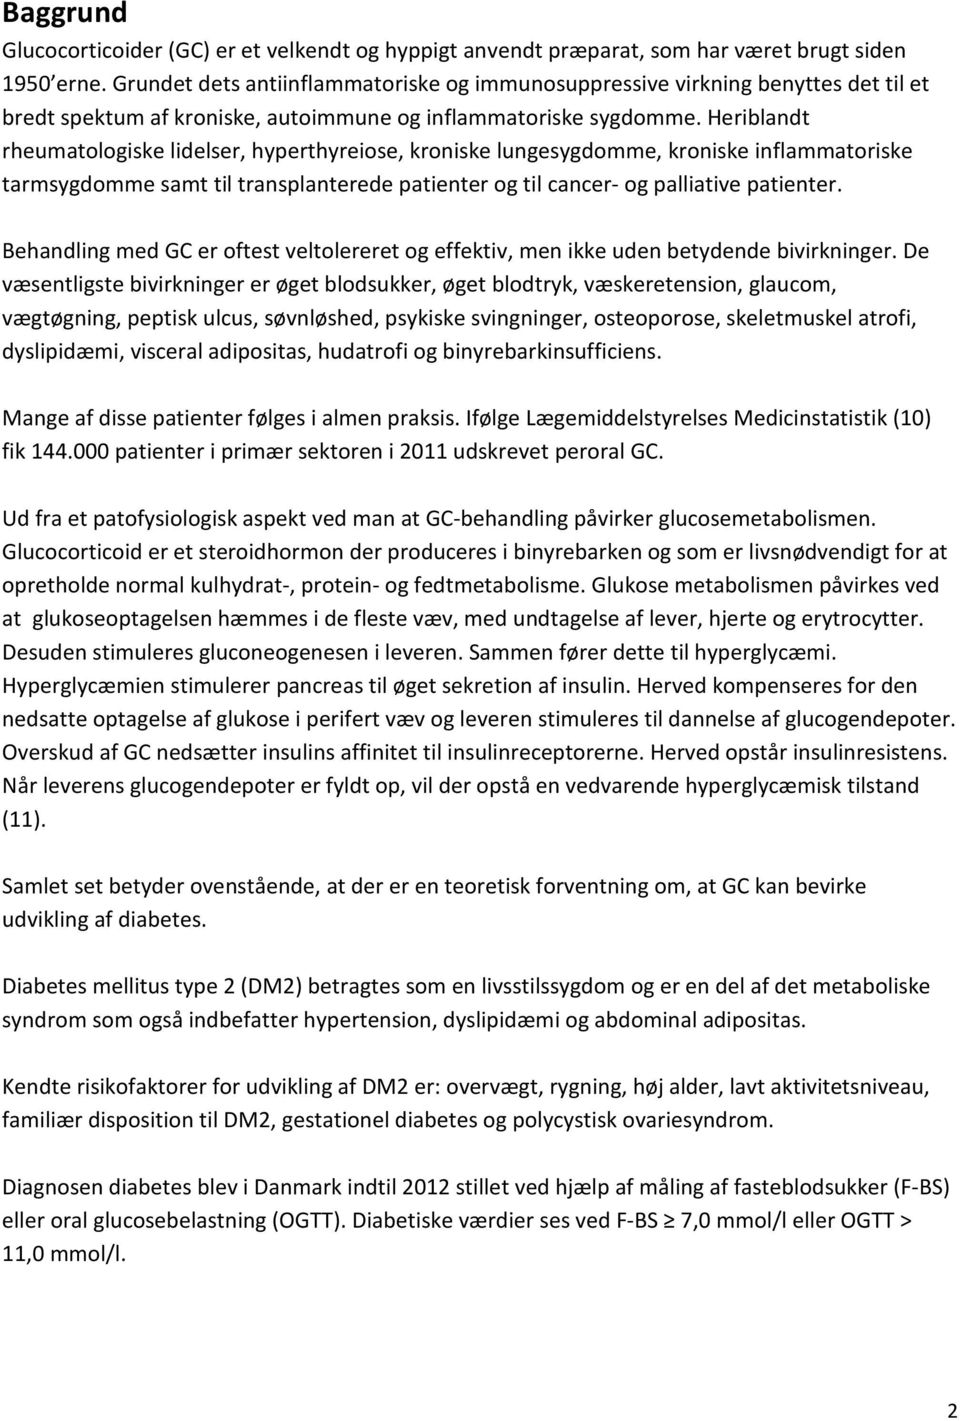 Heriblandt rheumatologiske lidelser, hyperthyreiose, kroniske lungesygdomme, kroniske inflammatoriske tarmsygdomme samt til transplanterede patienter og til cancer- og palliative patienter.